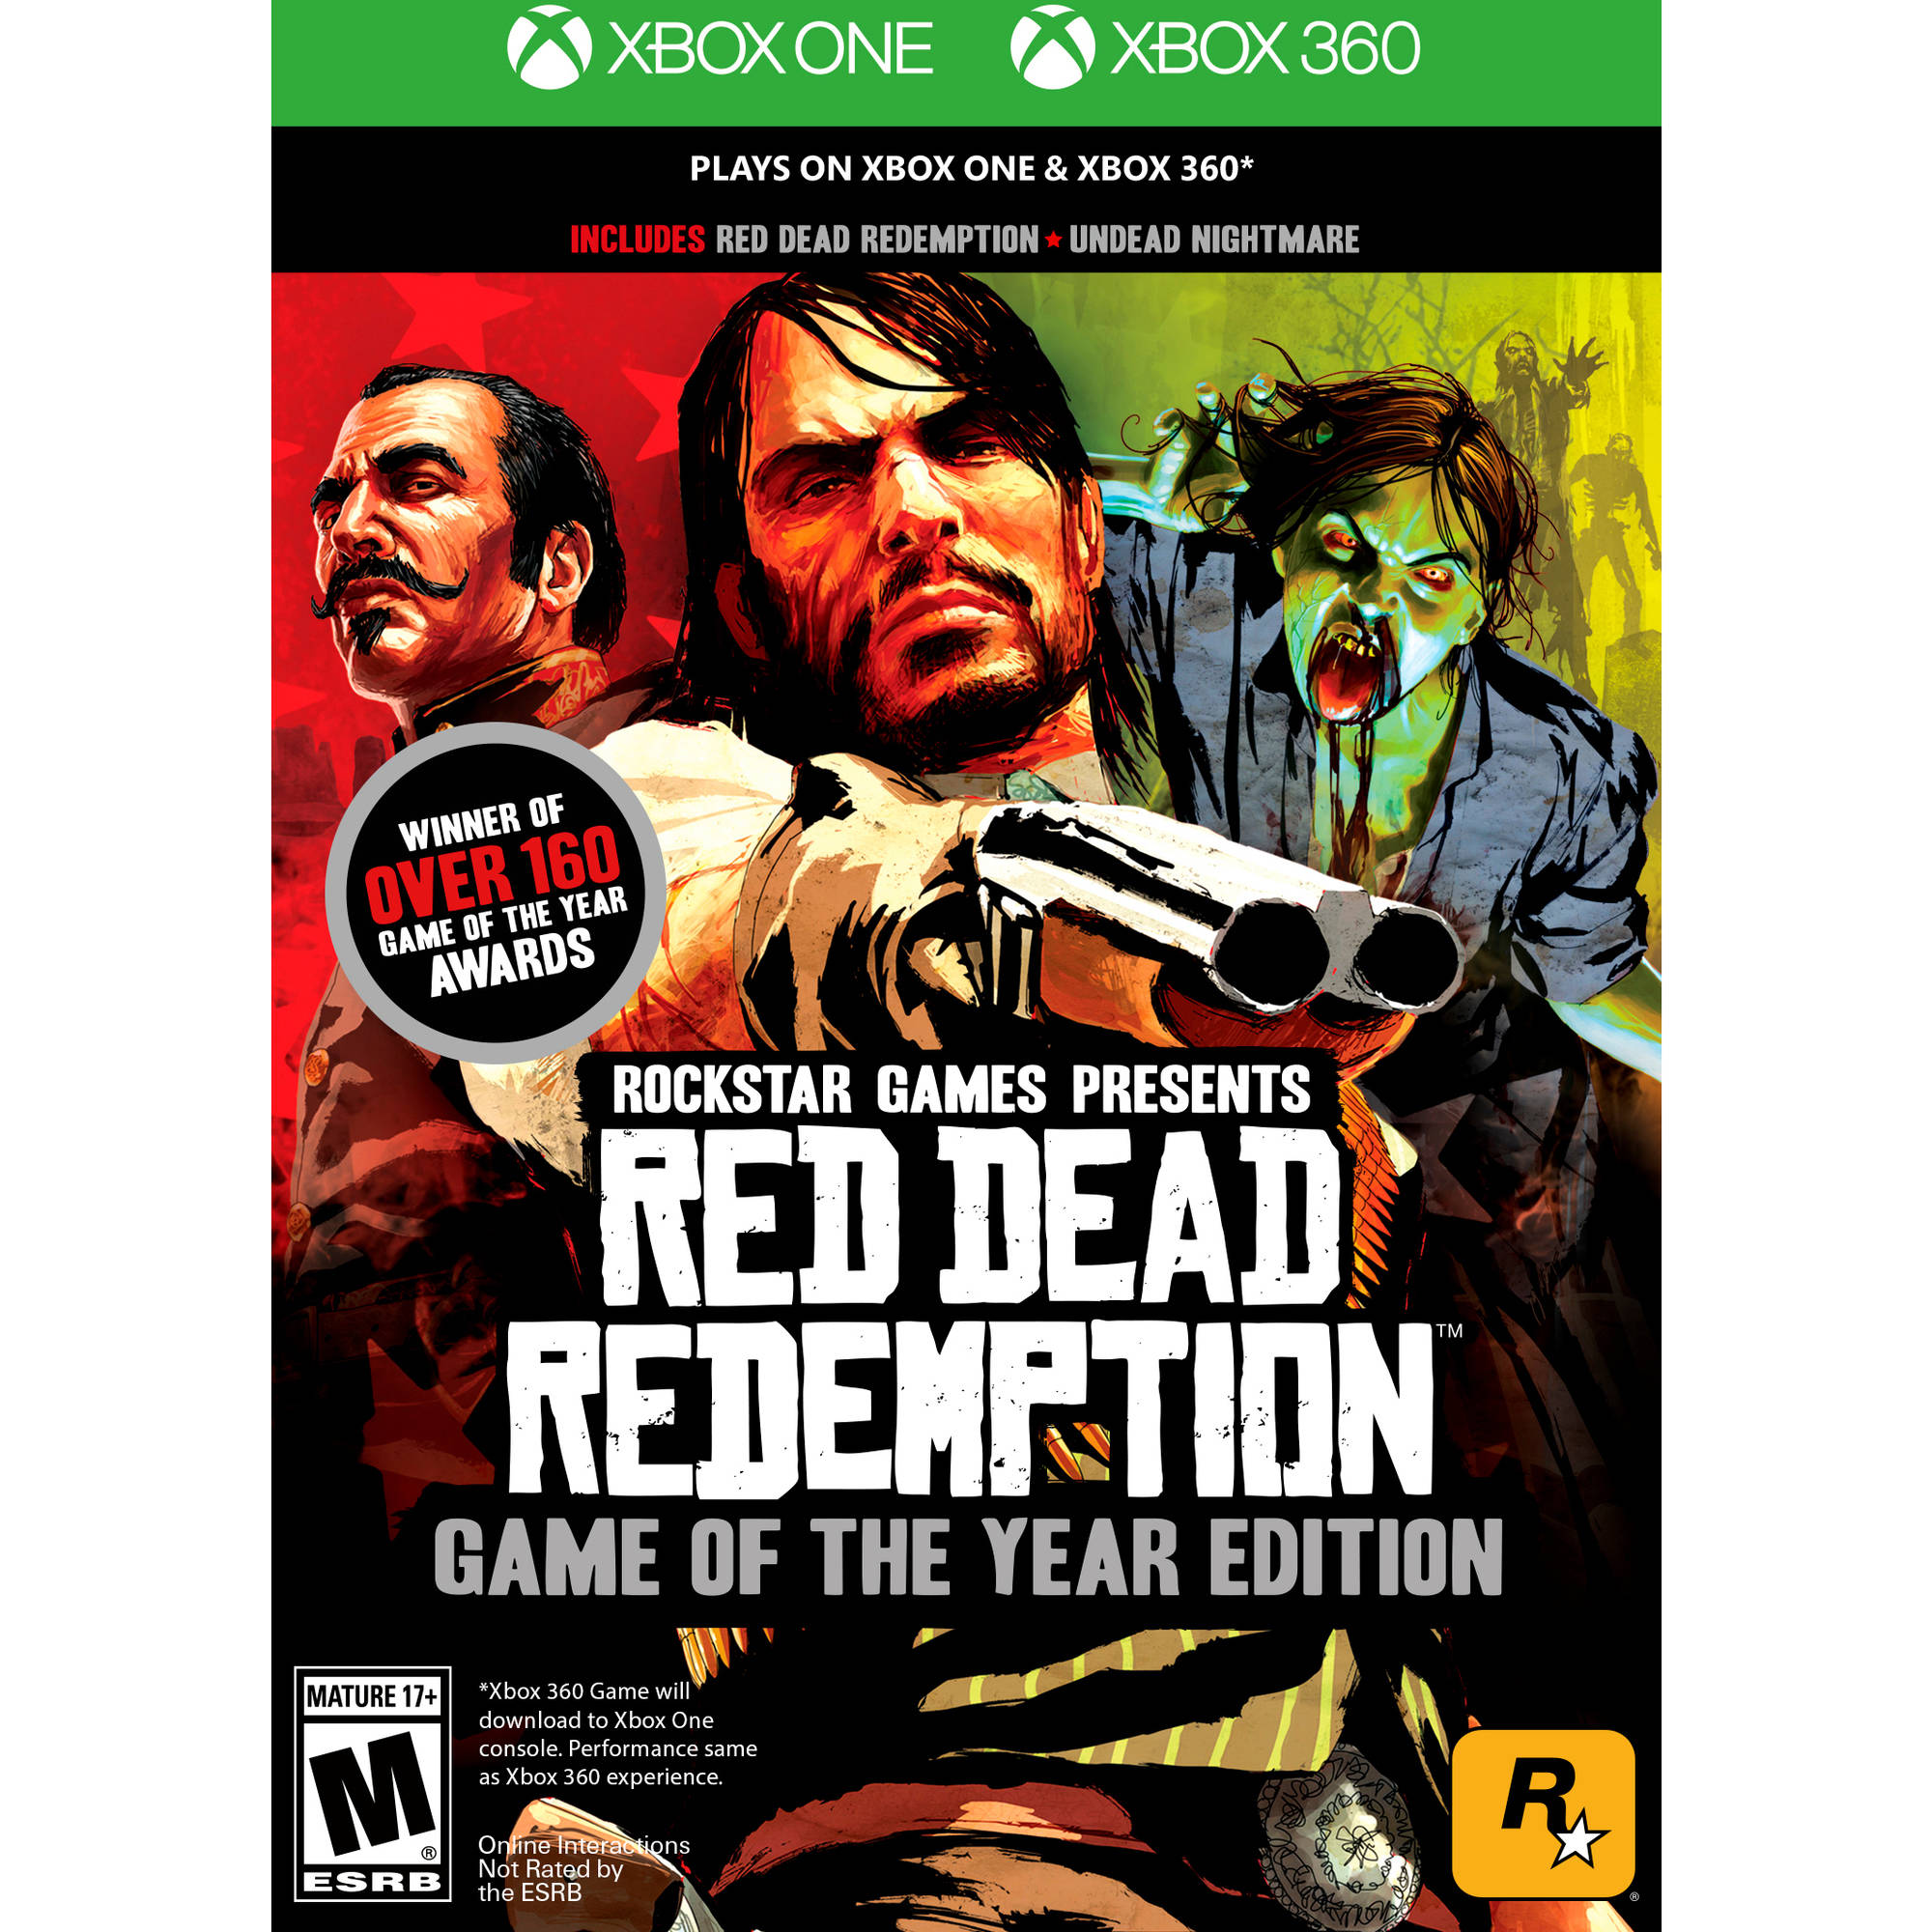 Most sexual games of xbox 360